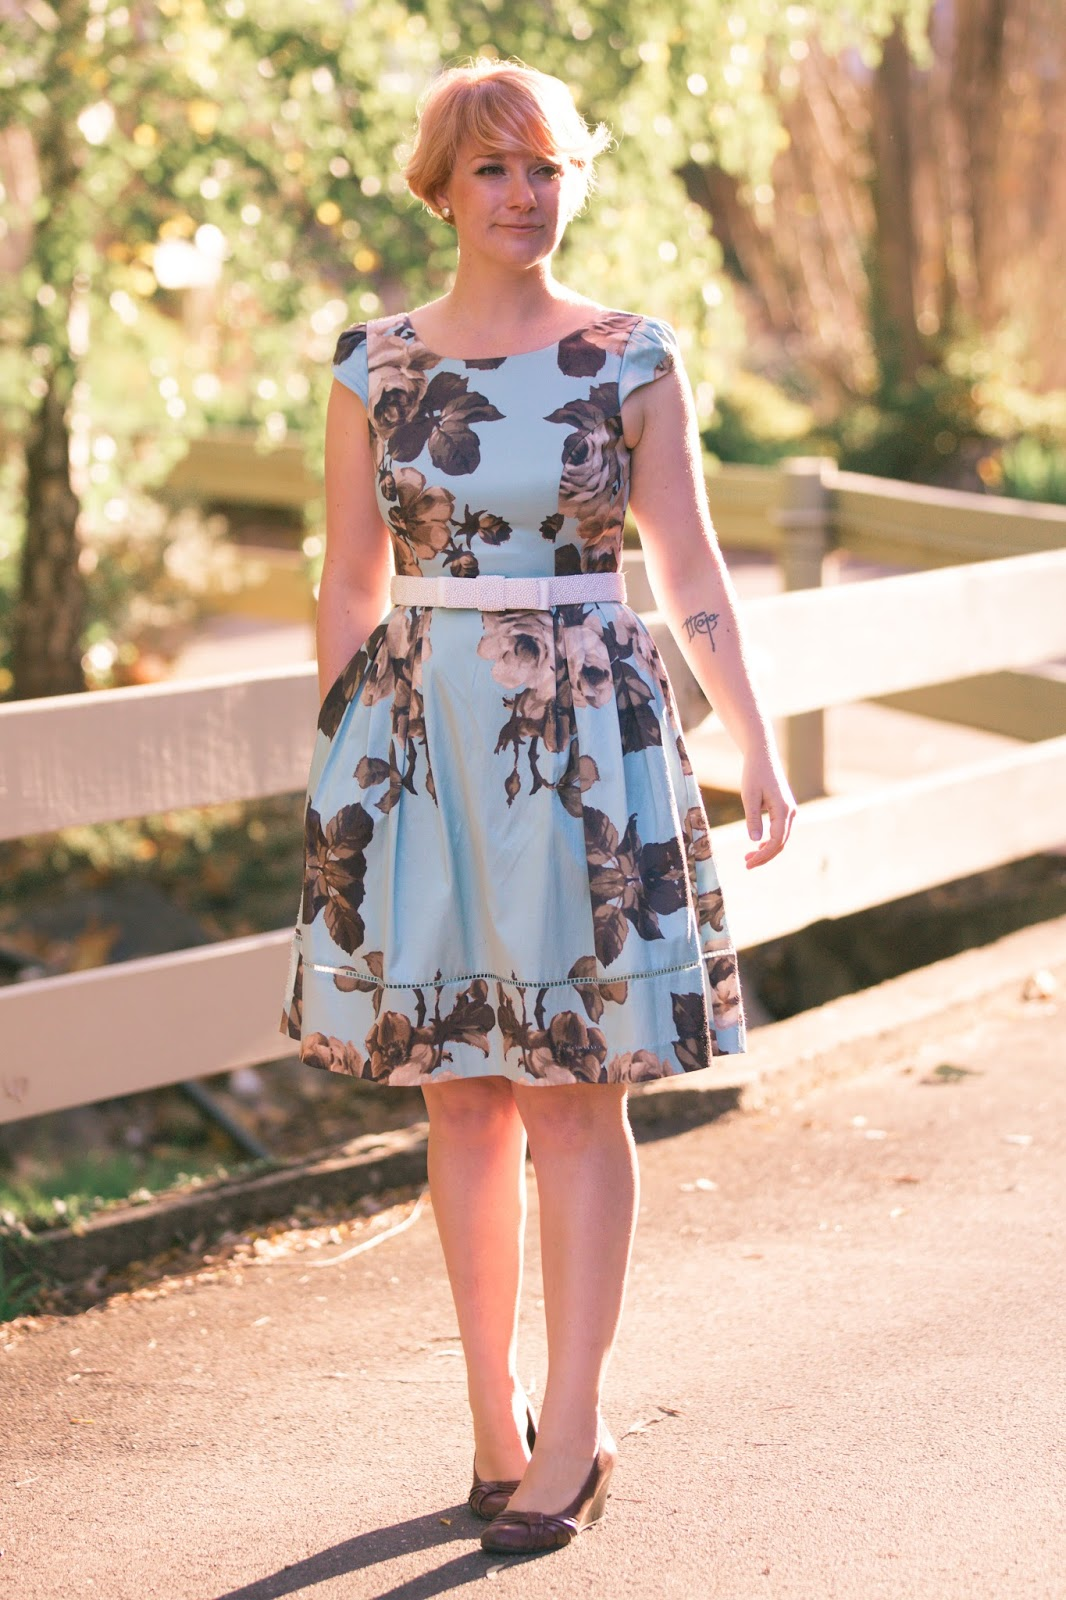 Finding Femme wears Review Australia blue floral dress and pearl belt.